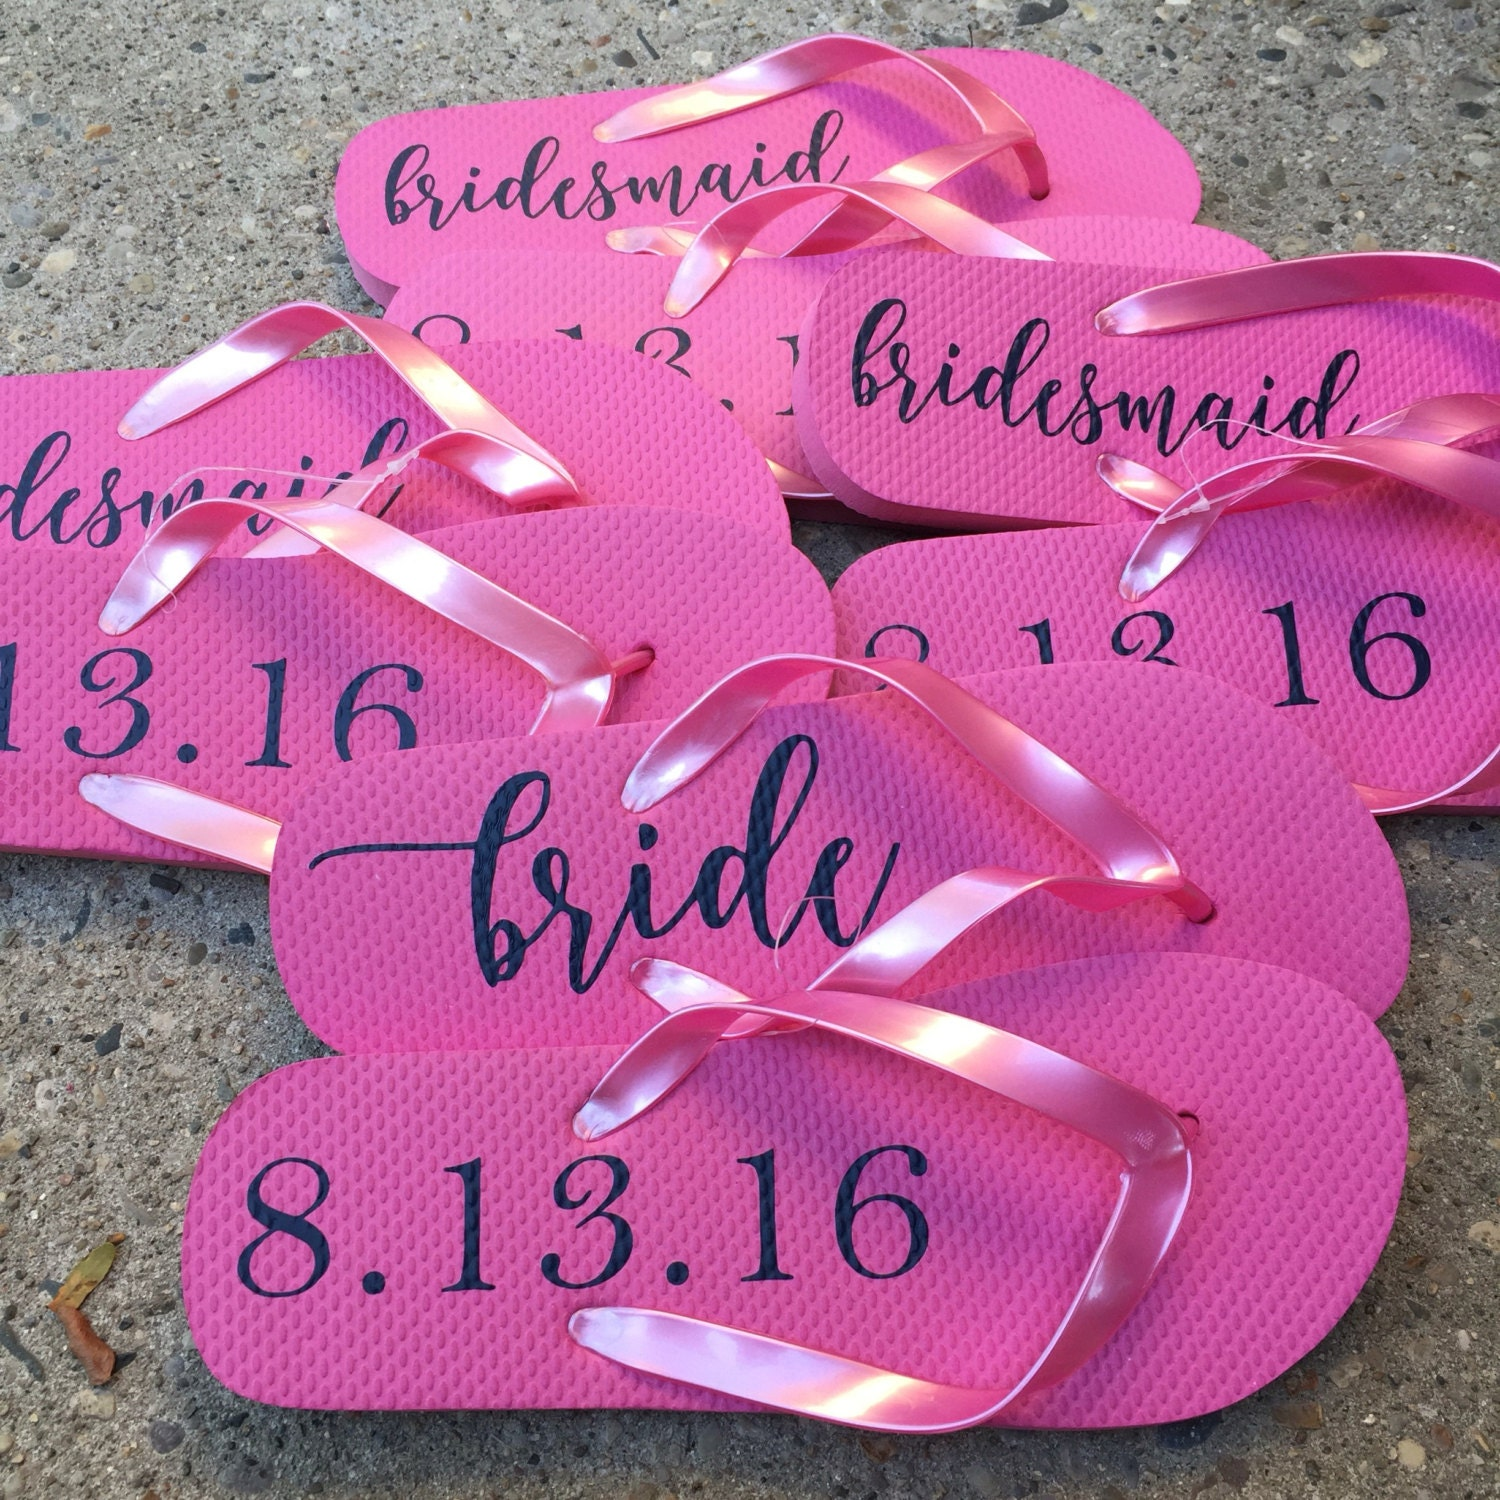 5e8a353b38a7 Flip Flop Labels DIY Project Bridal Party Gift Bridesmaid